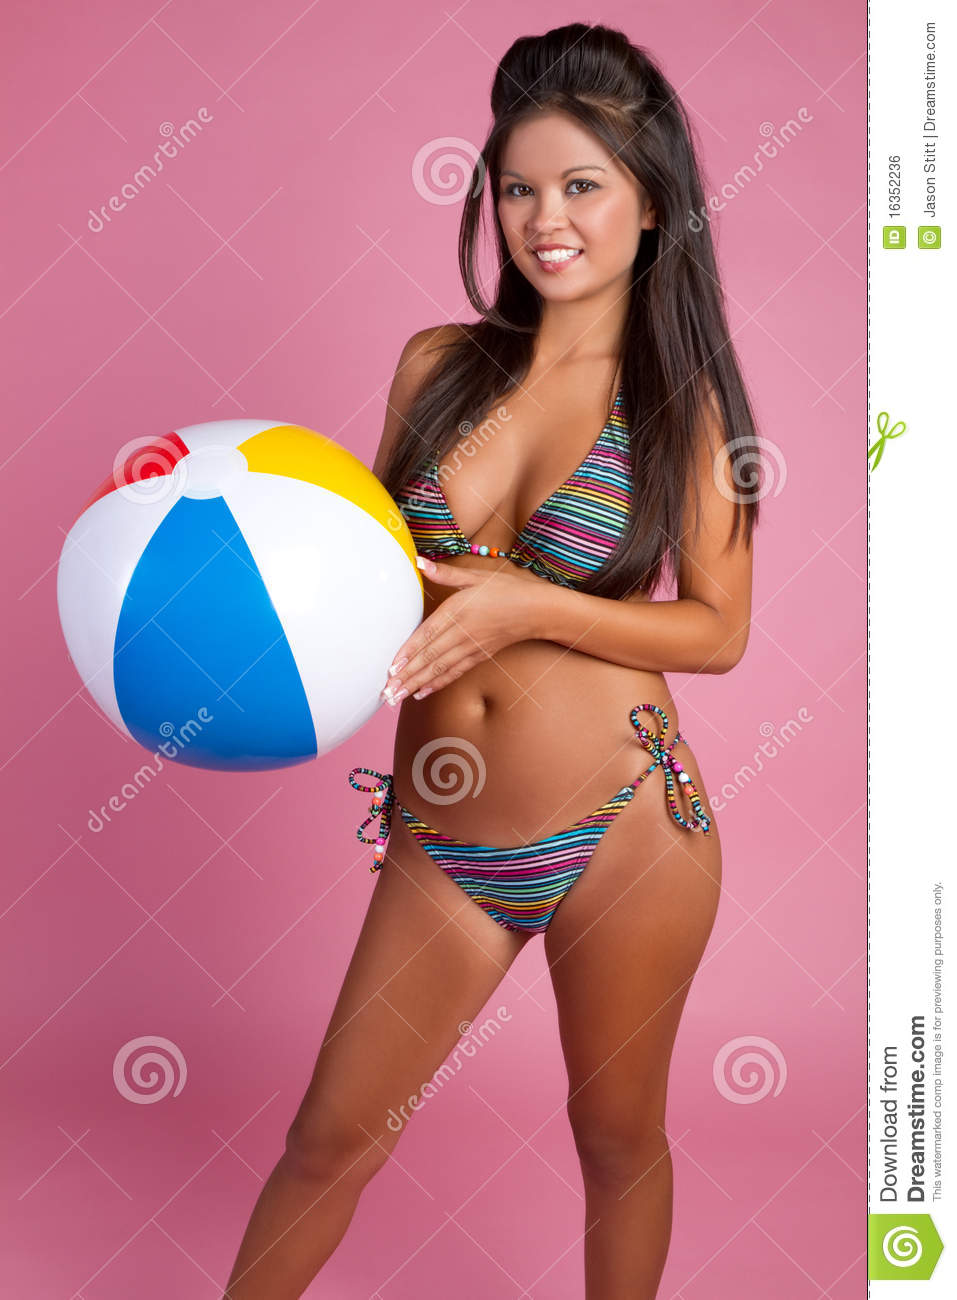 Asian bikini women photo free